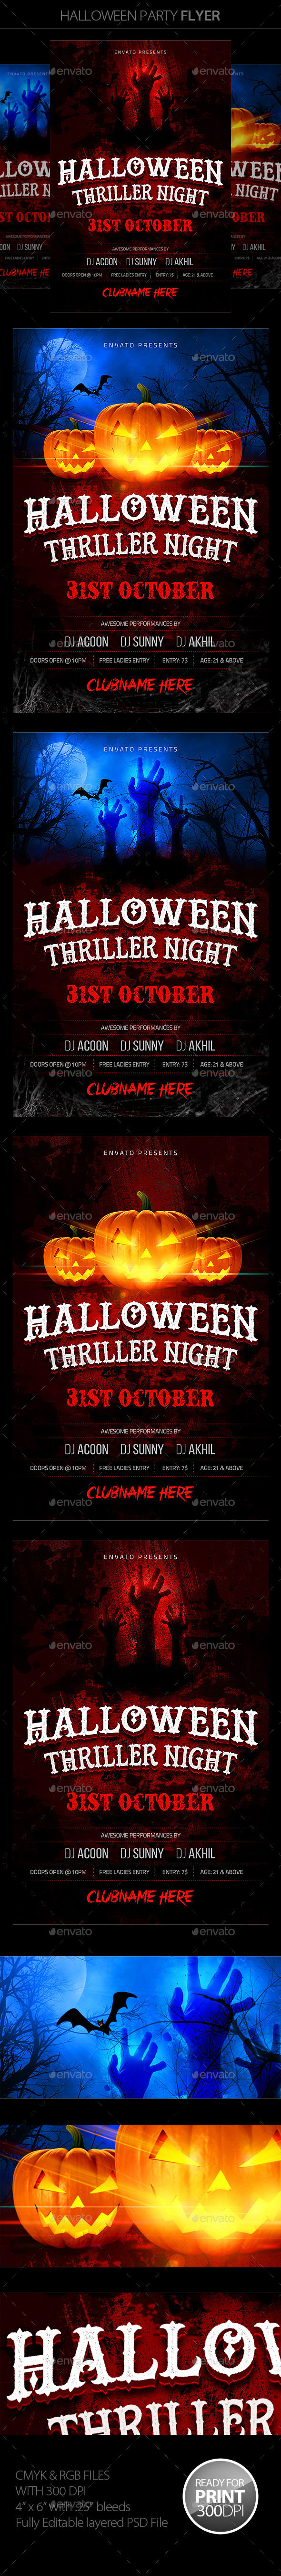 Halloween Flyer by Mantushetty (Halloween party flyer)